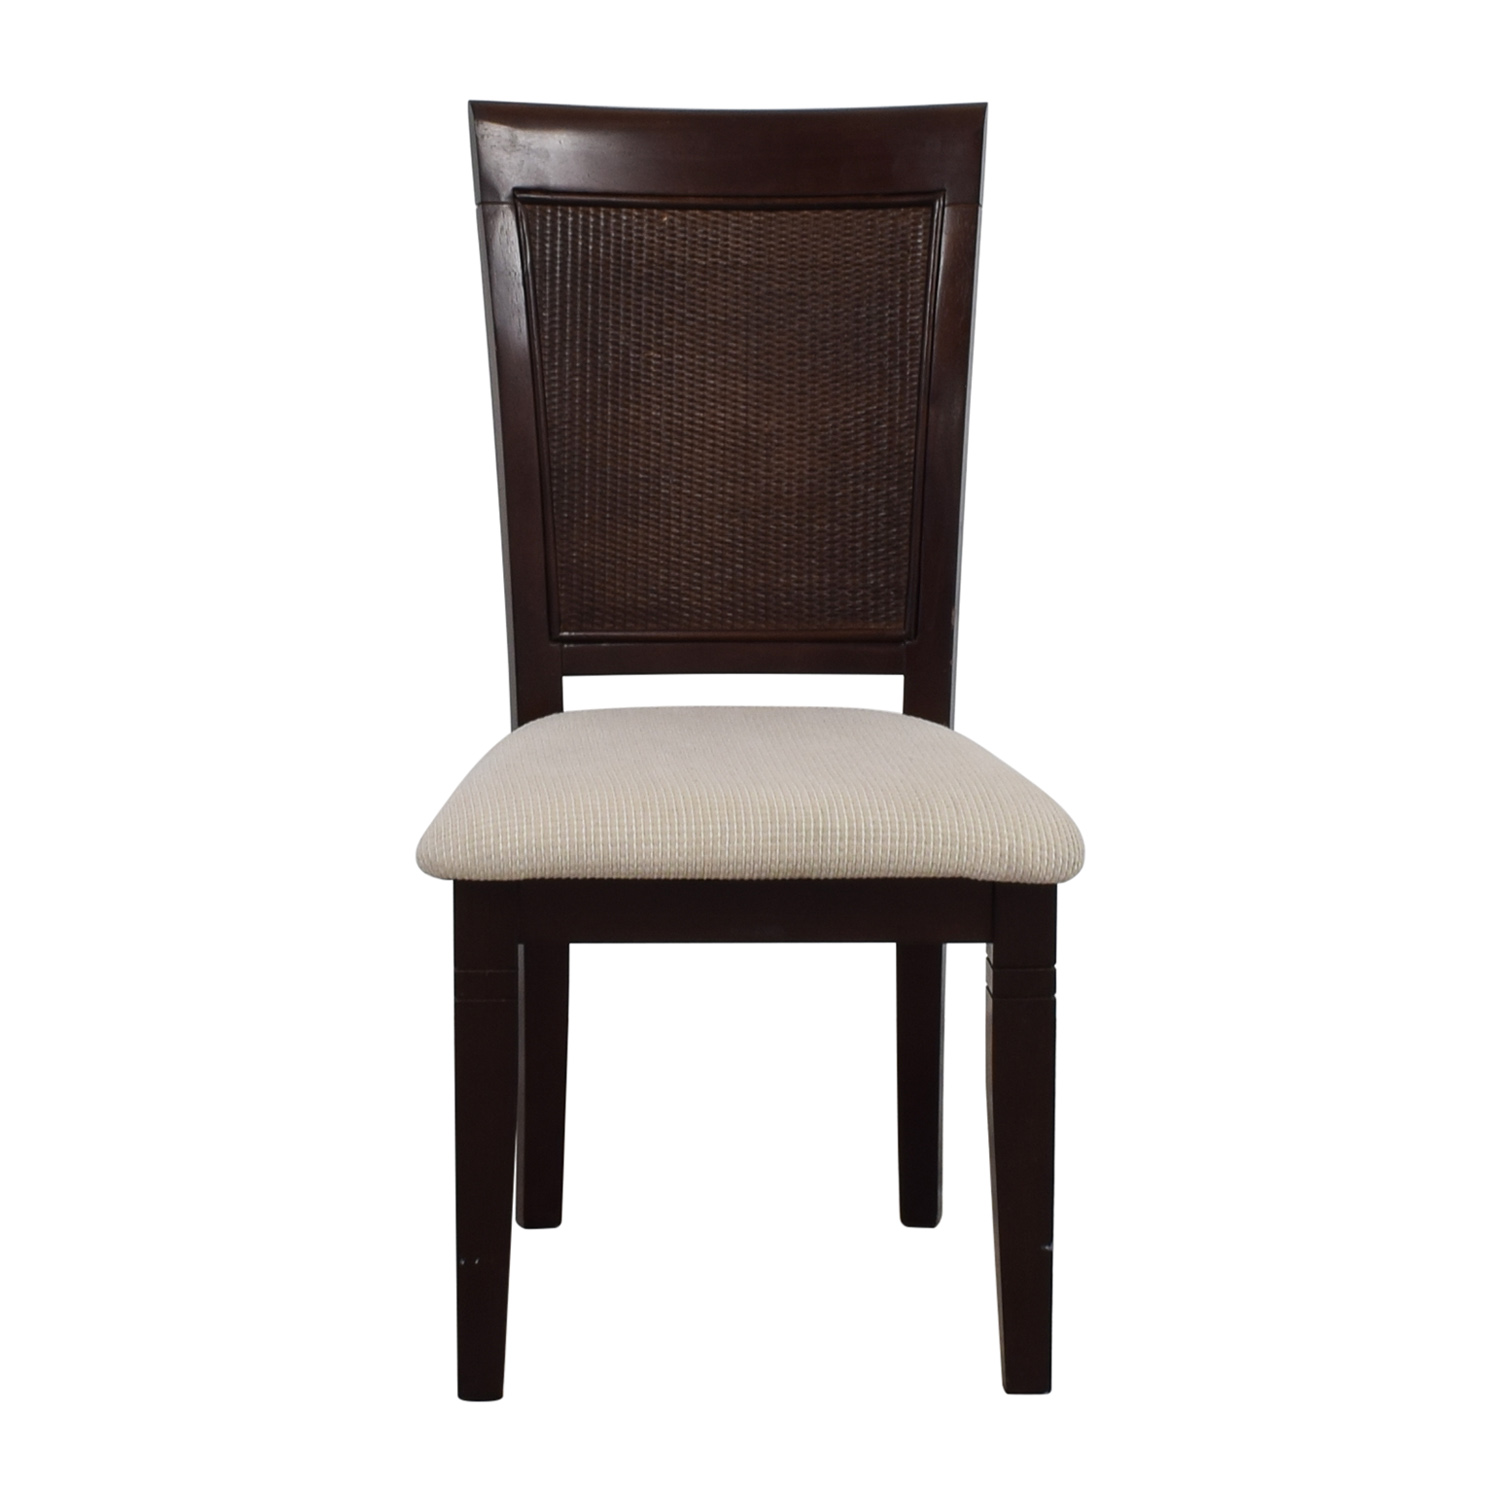 Beige Wood Chair with Padded Seat dimensions